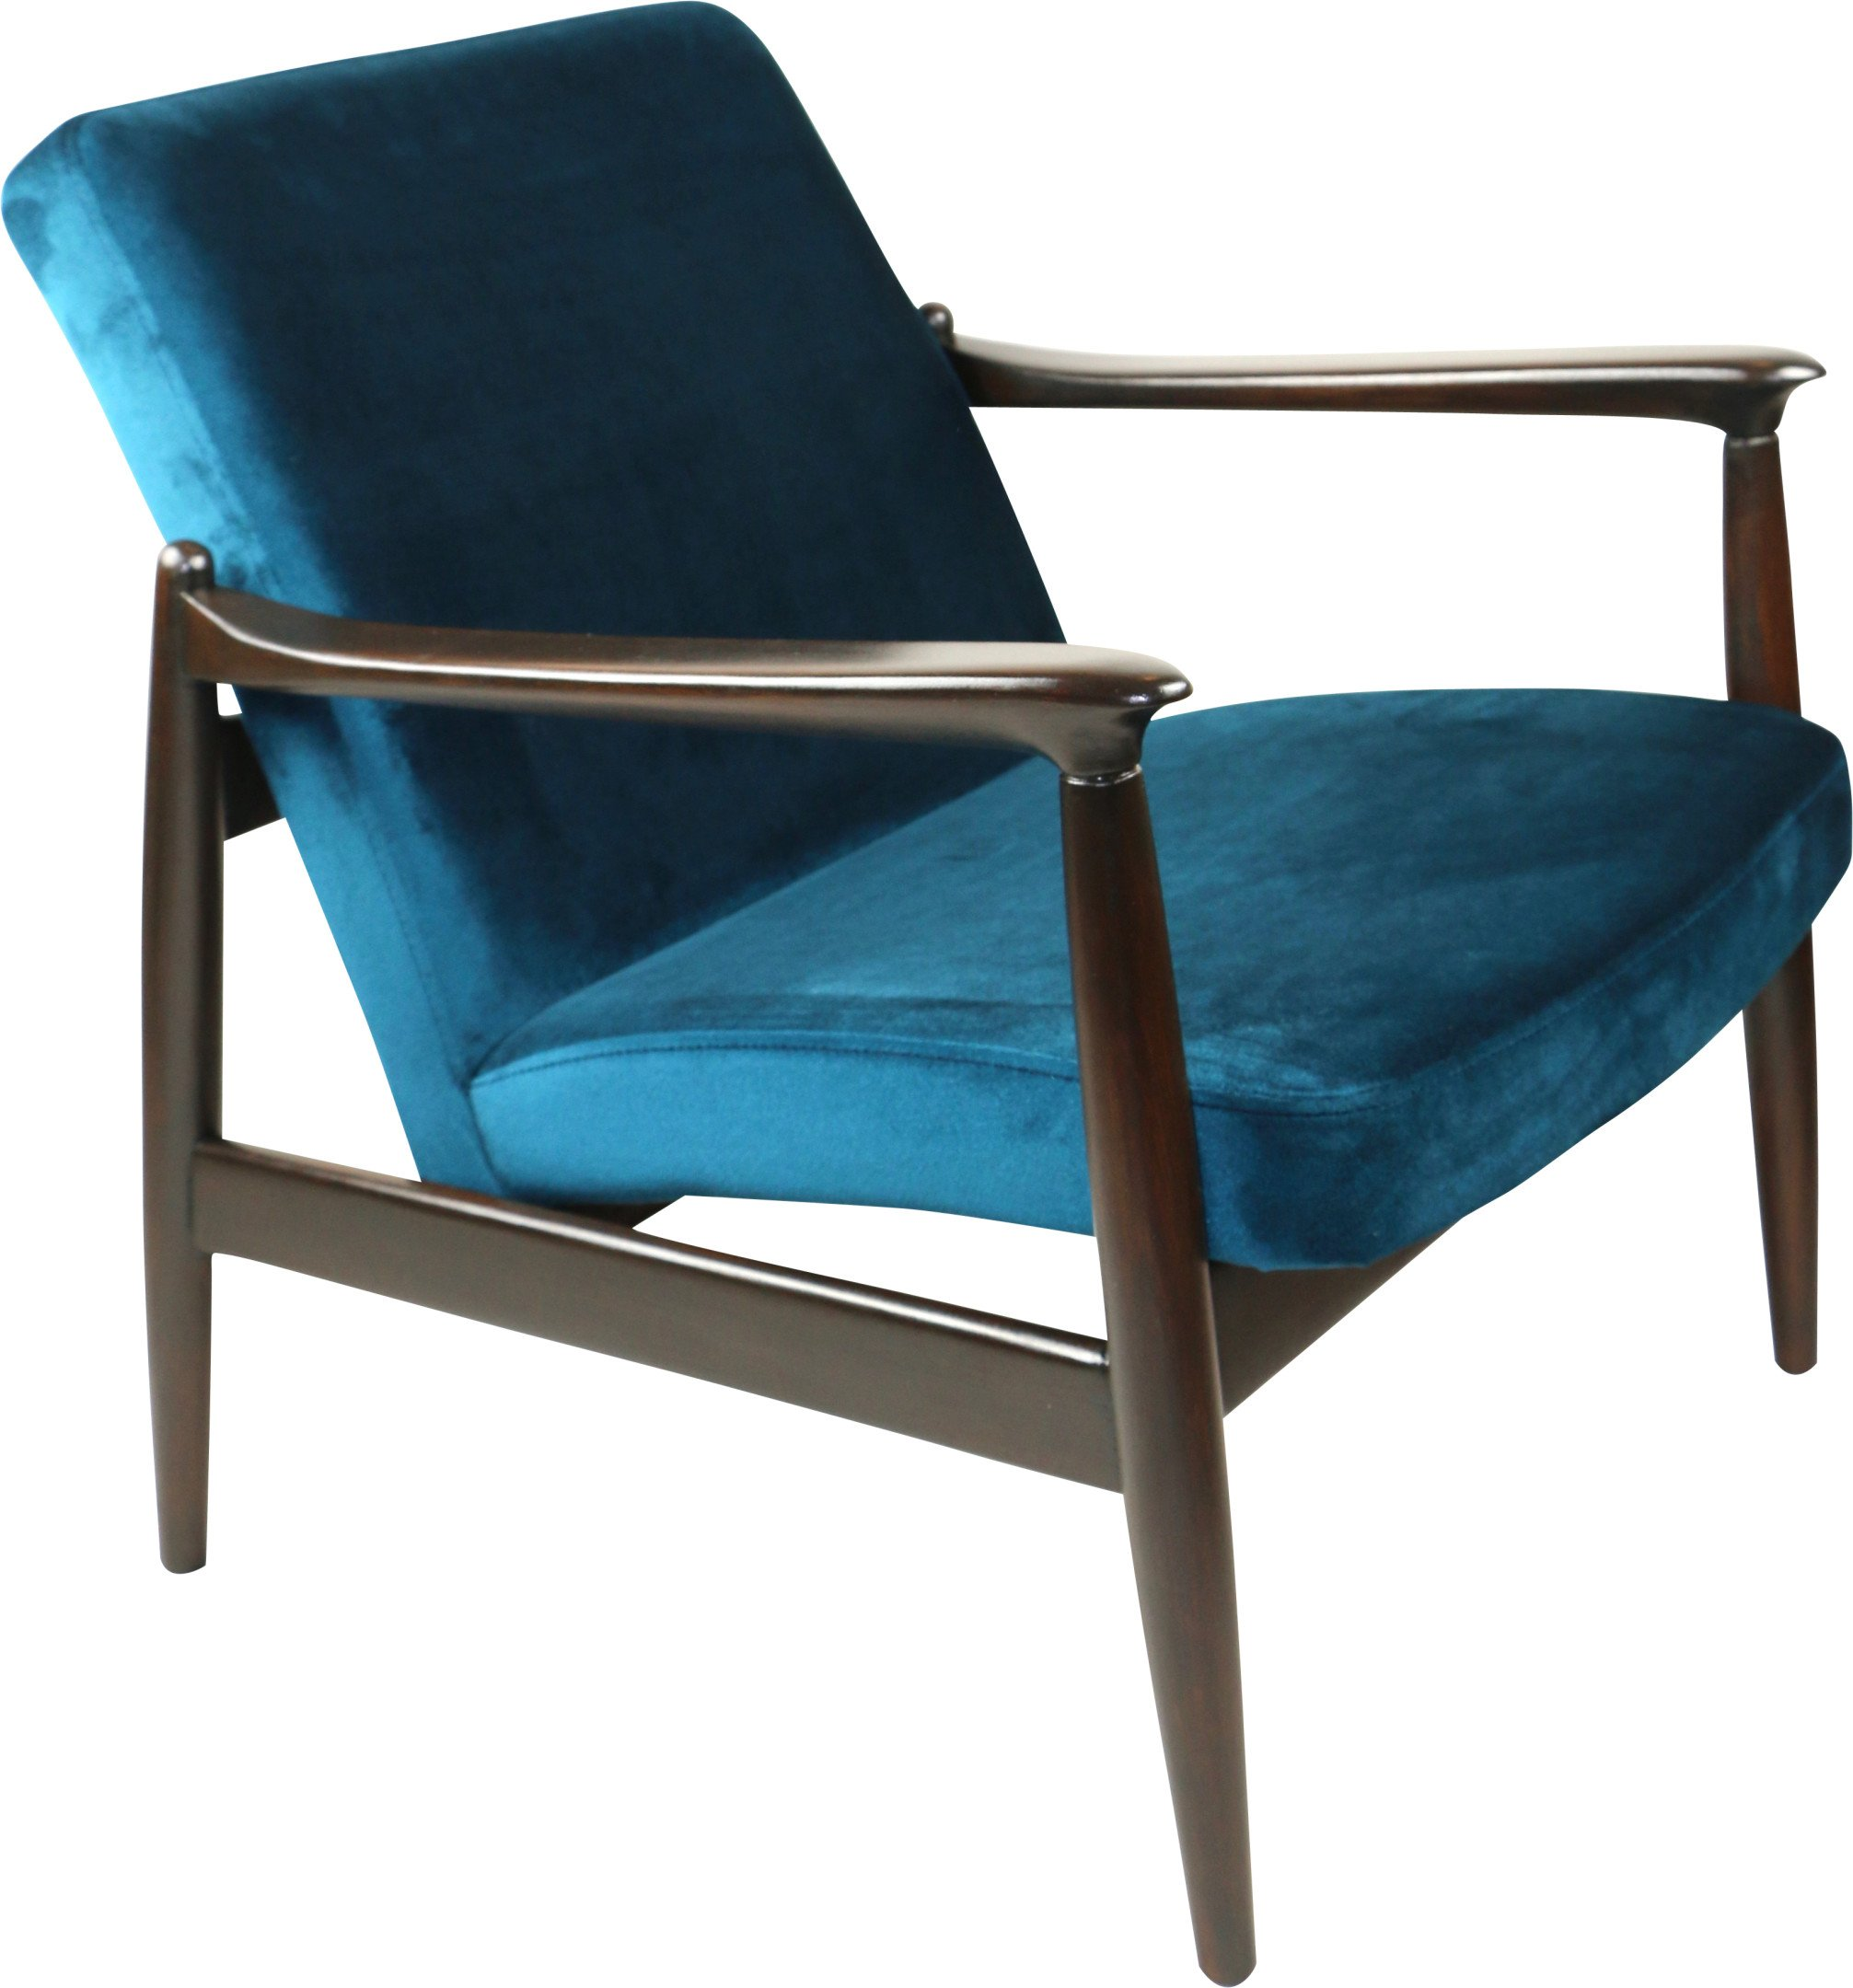 Armchair GFM-64 by E. Homa, Poland, 1970s